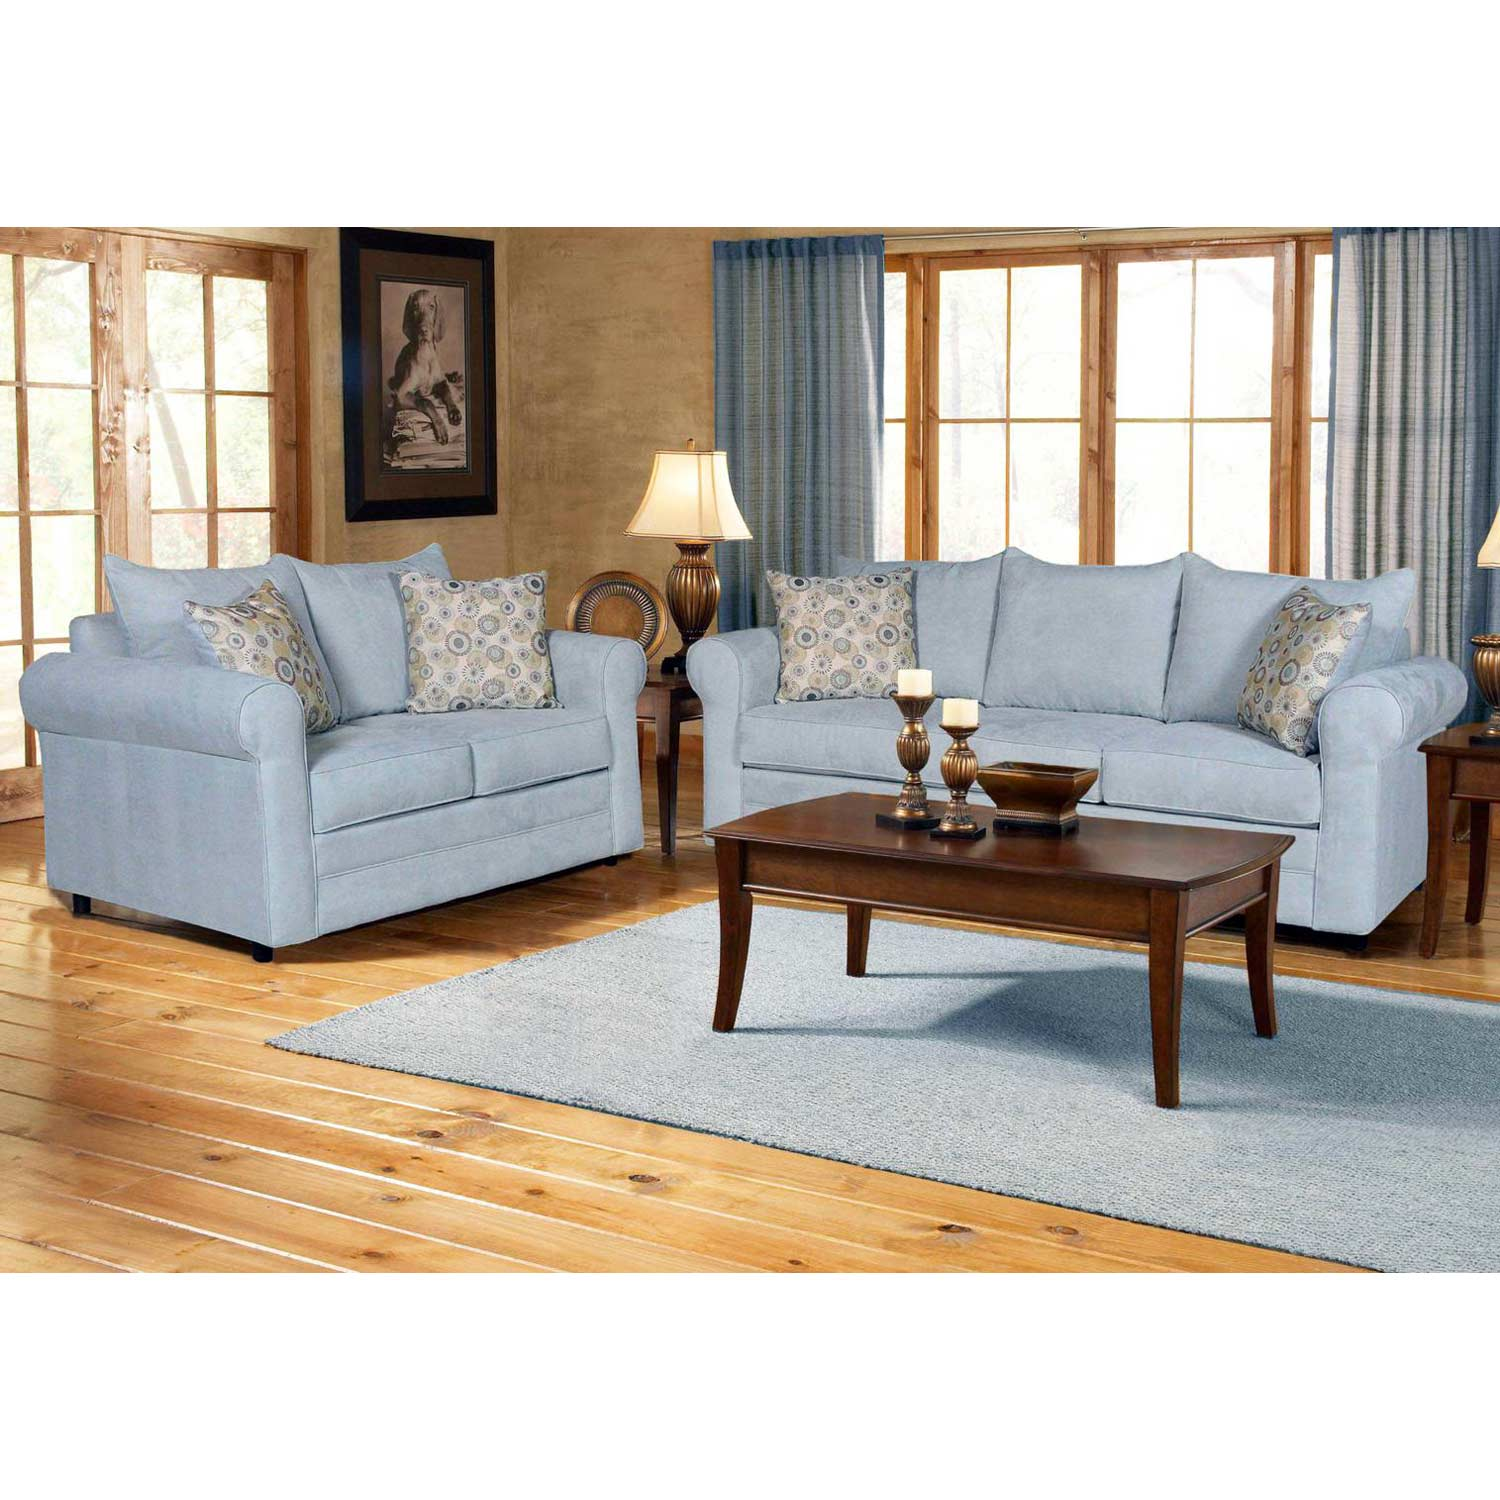 Anita Pillow Back Sofa - Rolled Arms, Blitz Capri Fabric - CHF-255400-30